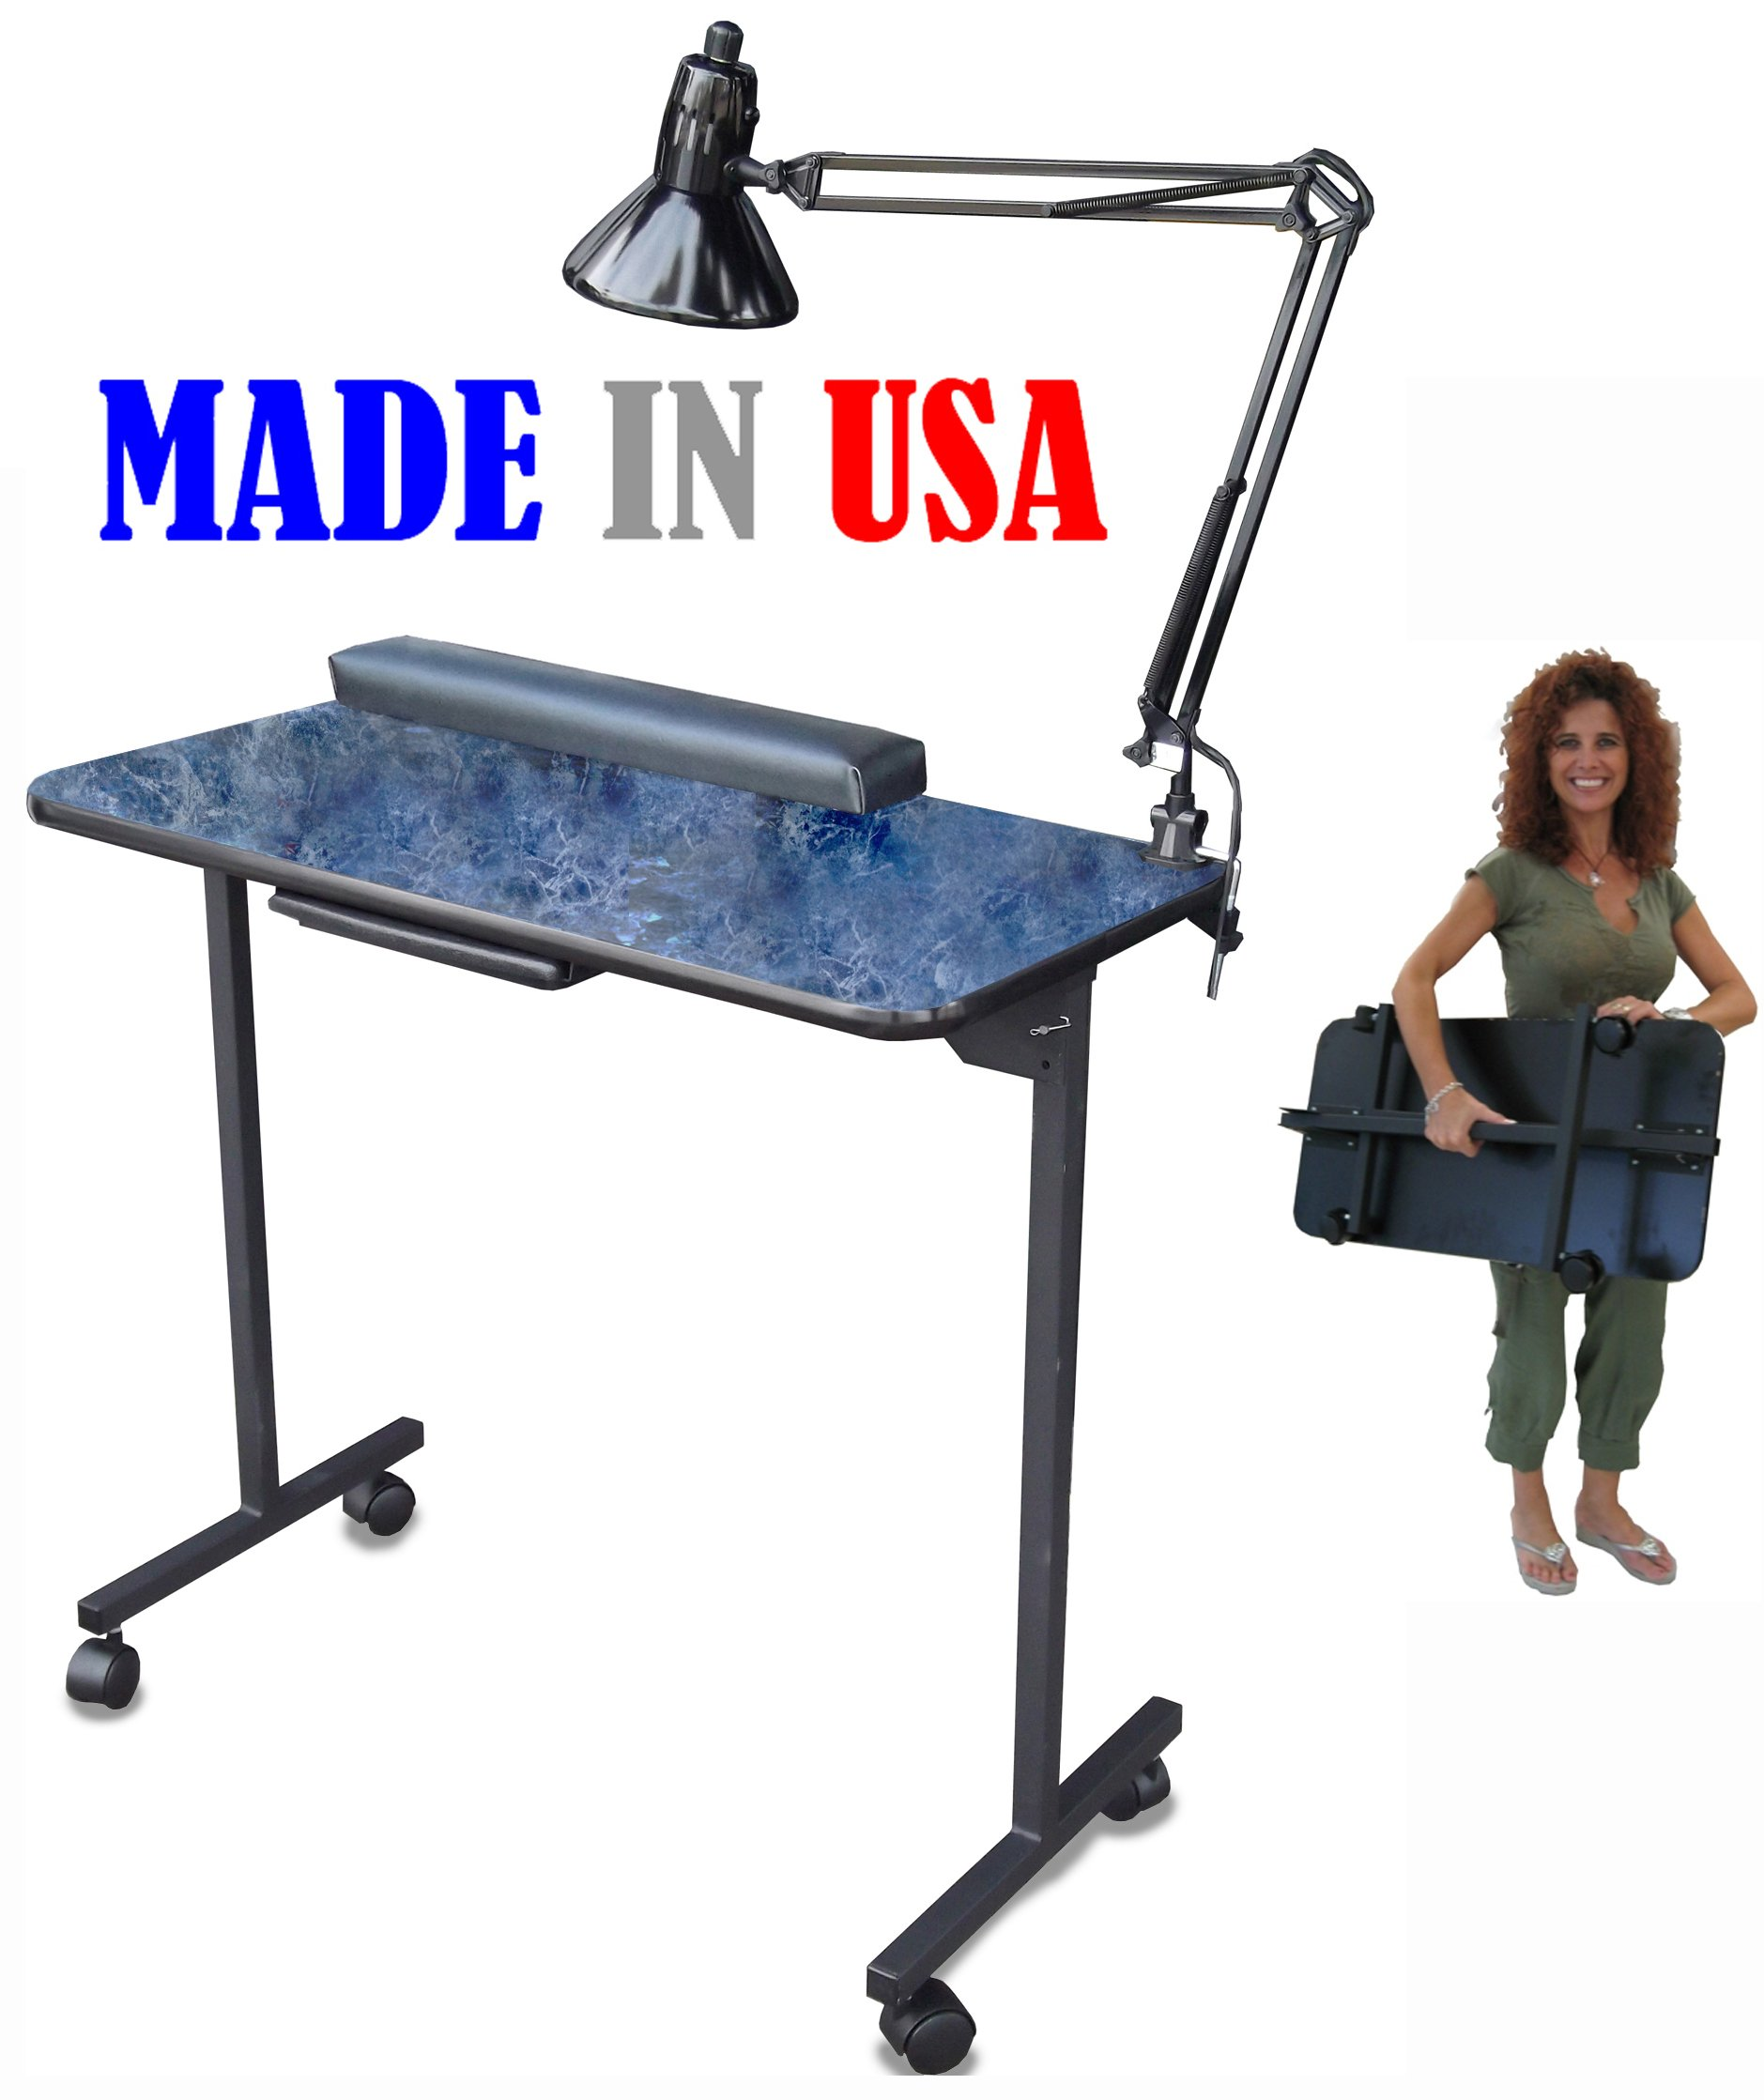 310DLX Portable Foldable Manicure Nail Table Black Marble Lam. Top by Dina Meri